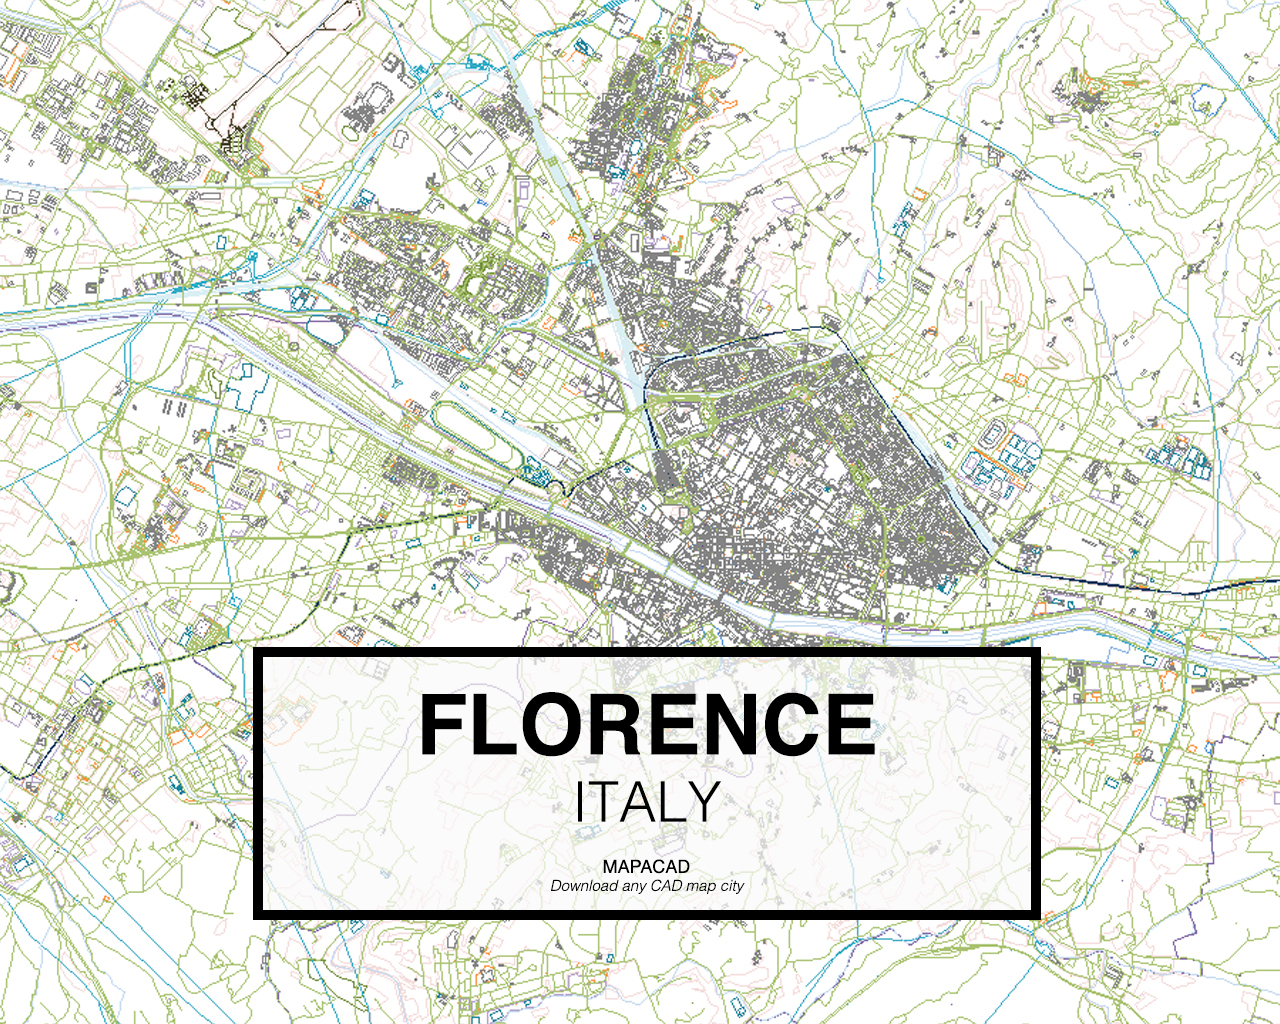 Florence Italy 01 Mapacad download map cad dwg dxf autocad free 2d 3d